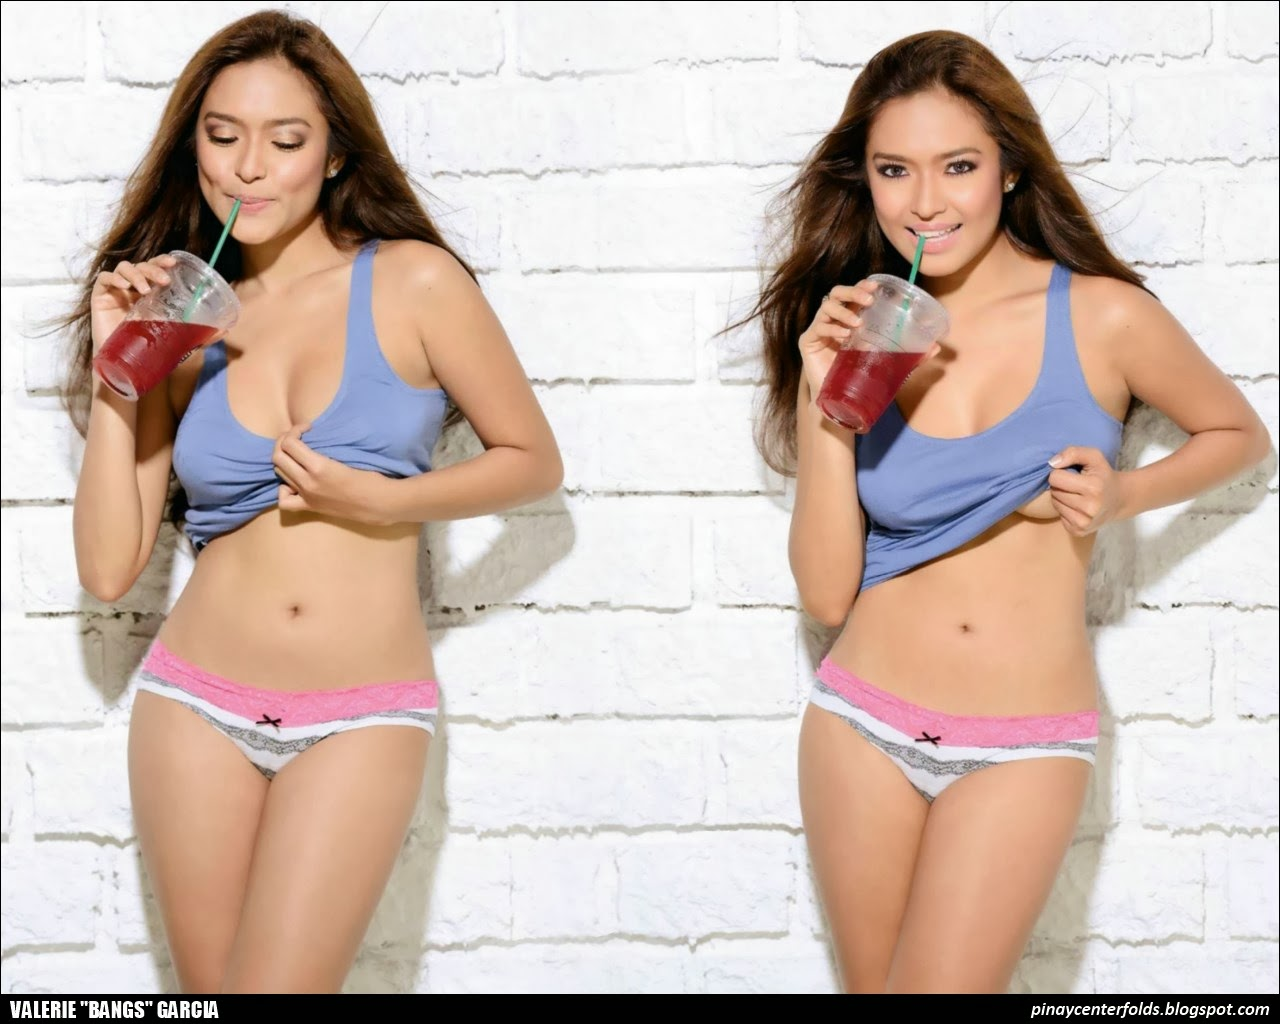 Valerie Bangs Garcia In FHM 2013 3